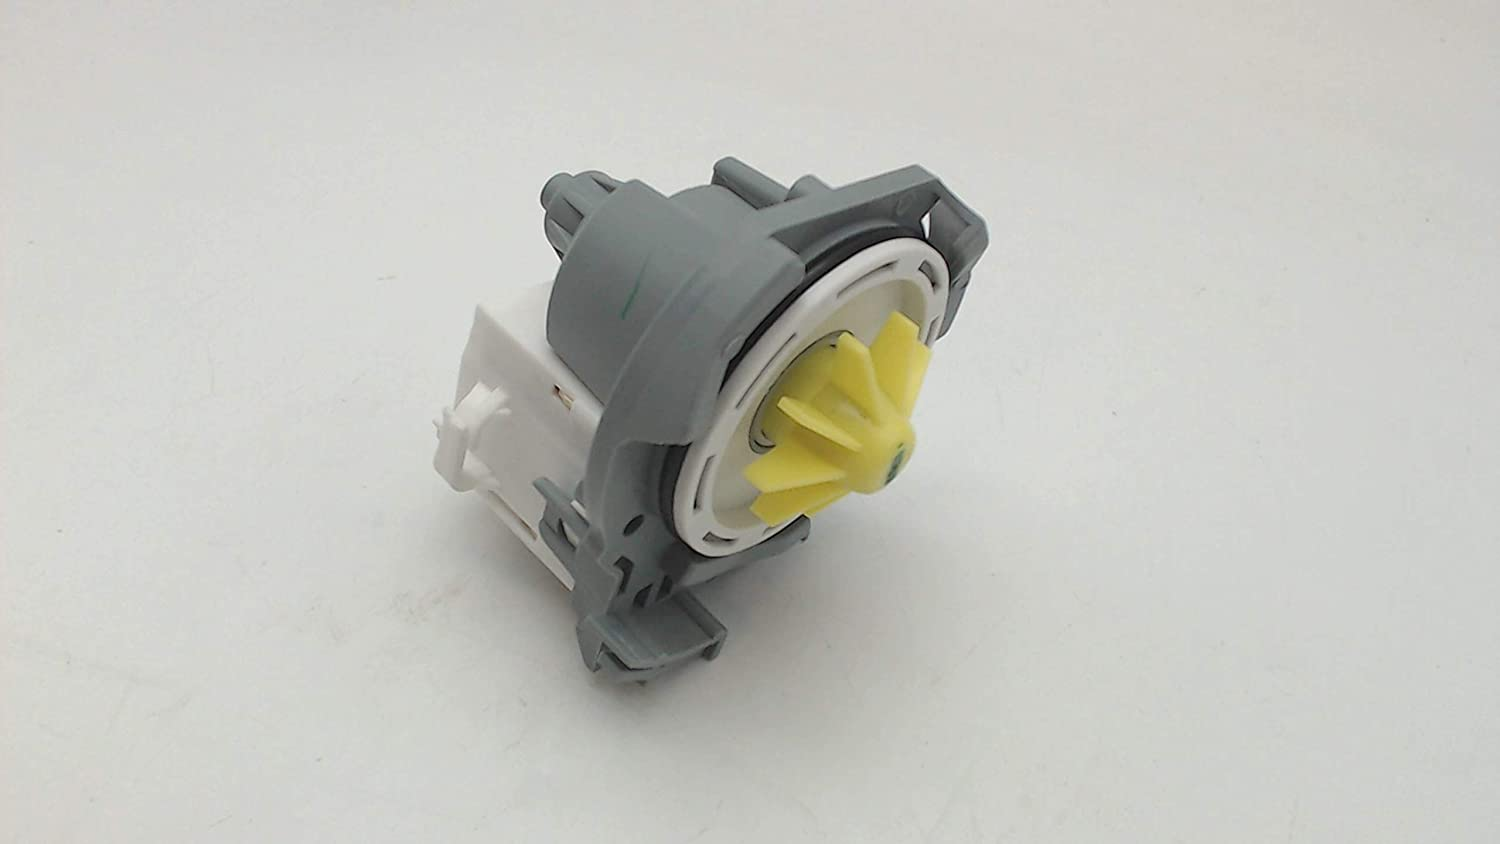 W10876537 Drain Pump Assembly Compatible With Whirlpool Dishwashers